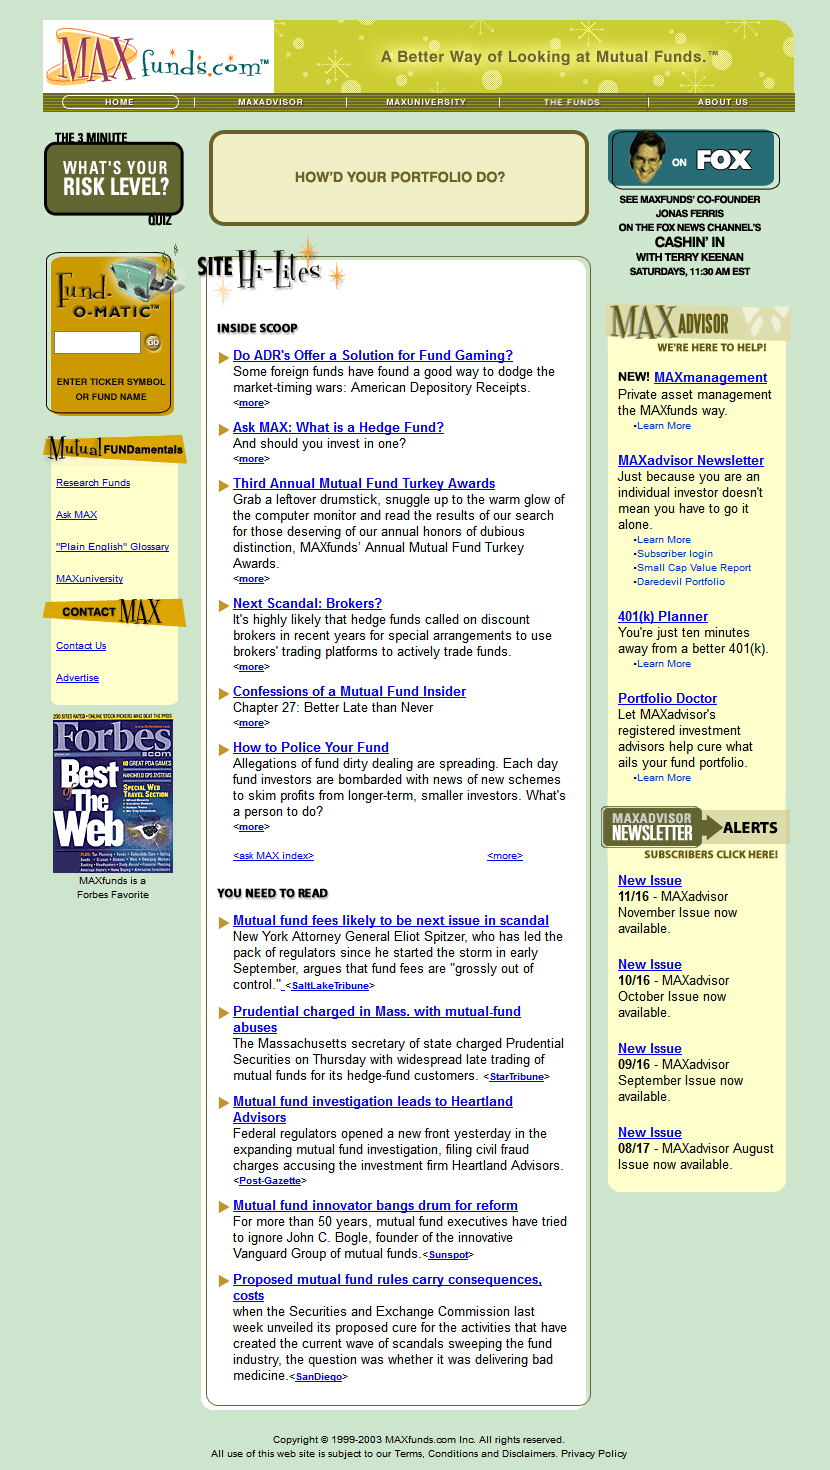 MAXfunds in 2003